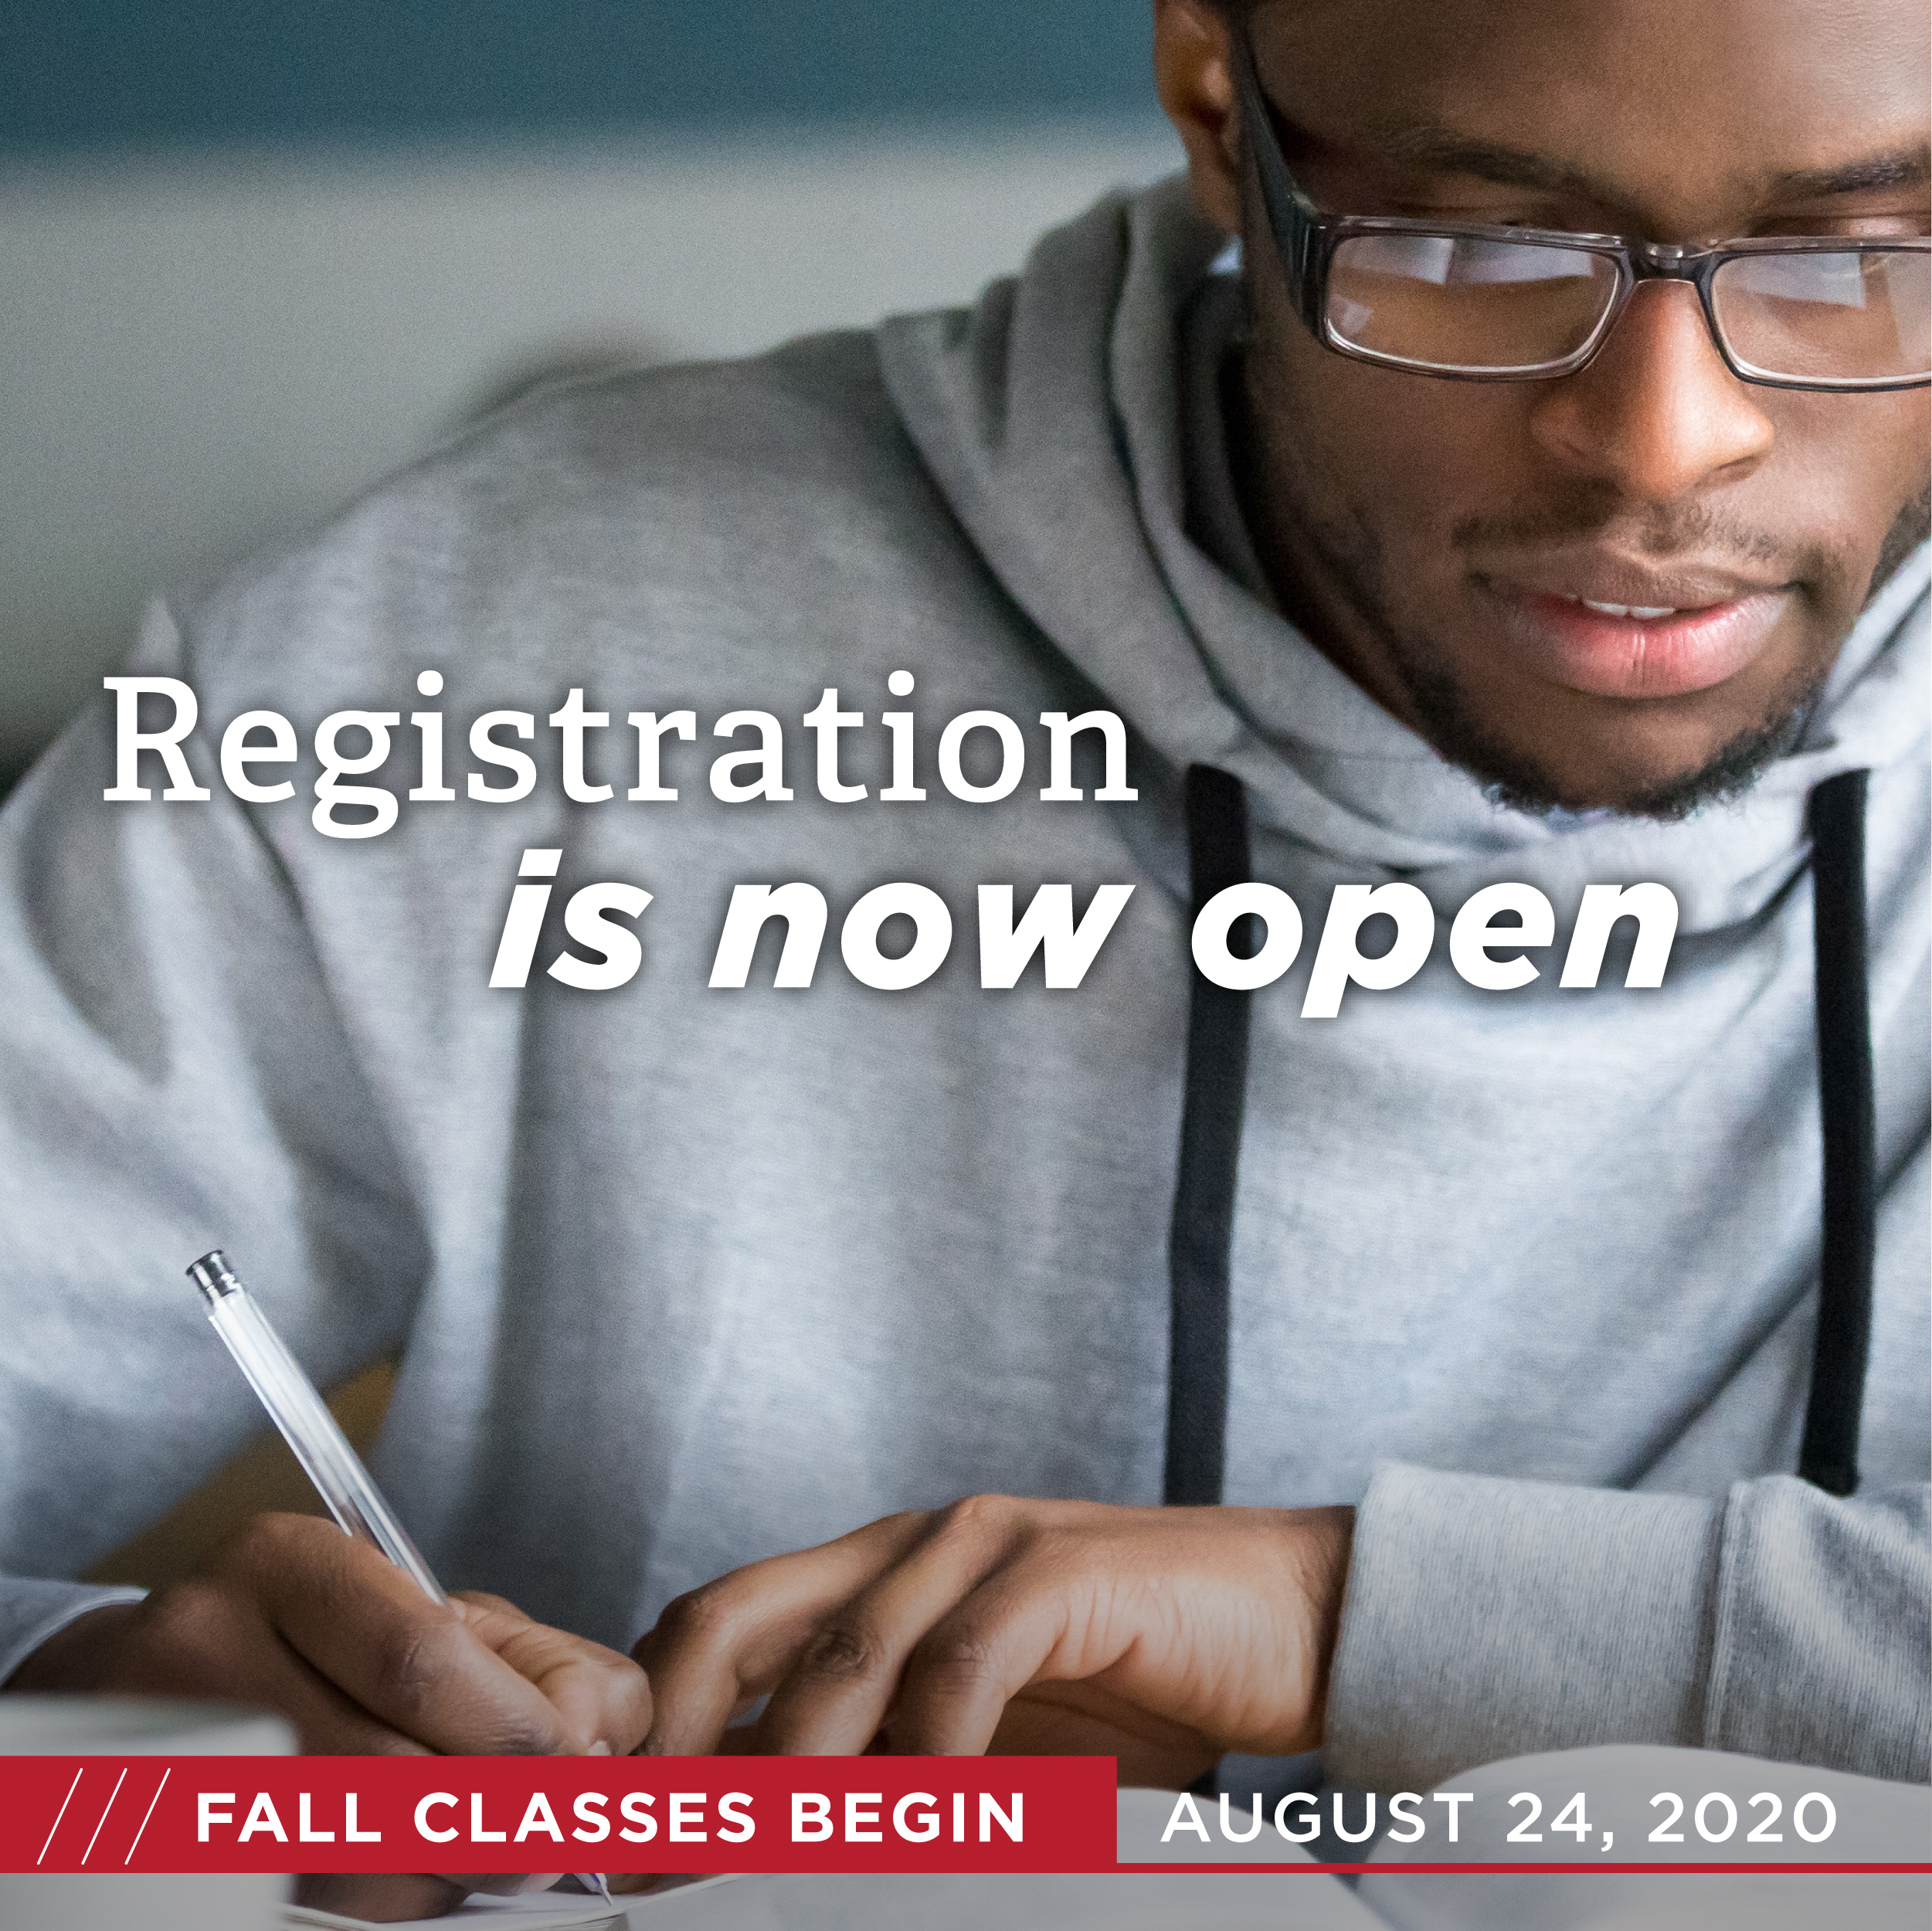 Registration is now open. Fall classes begin August 24.